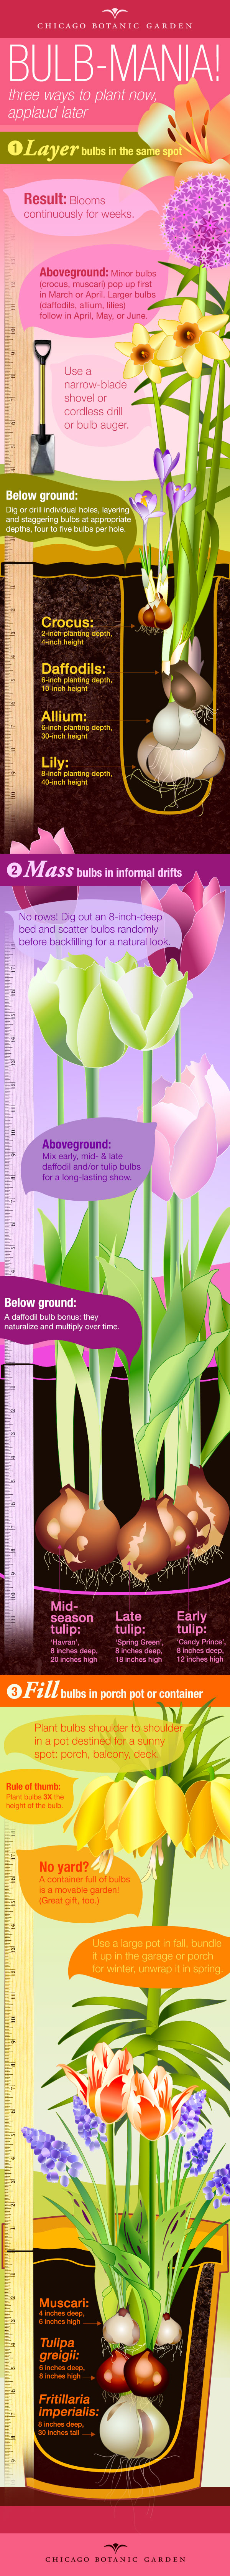 An Infographic on Planting Bulbs